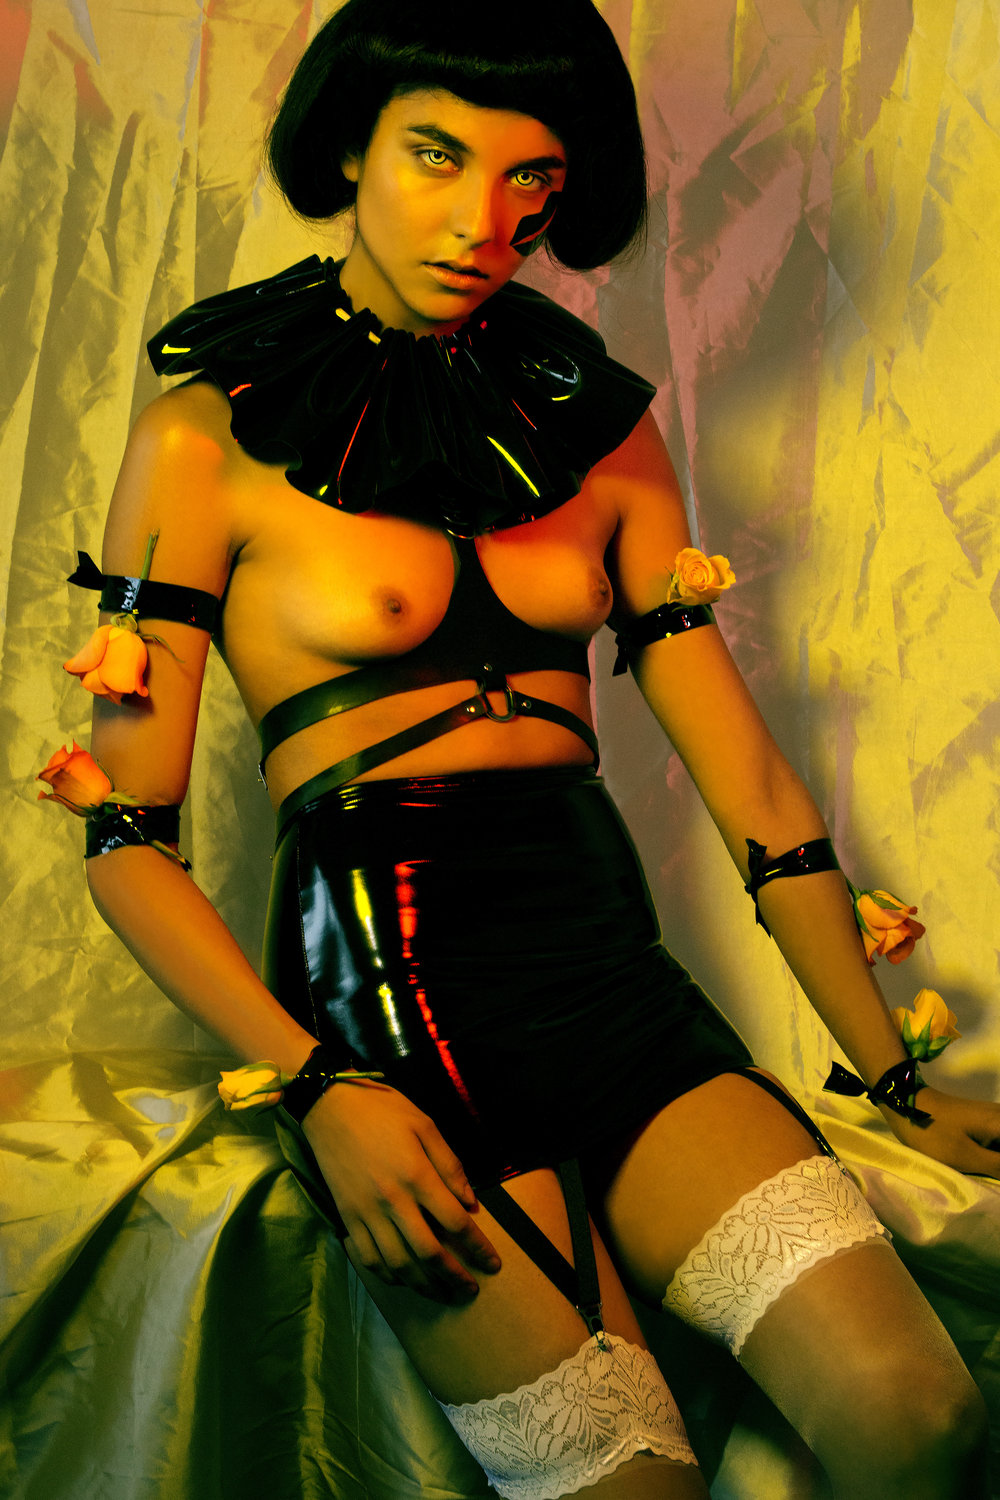 Harness: Broke Boutique; Collar: Tamsin Malones Layzell; Latex skirt: 7Heaven; Stockings: Stylist's own